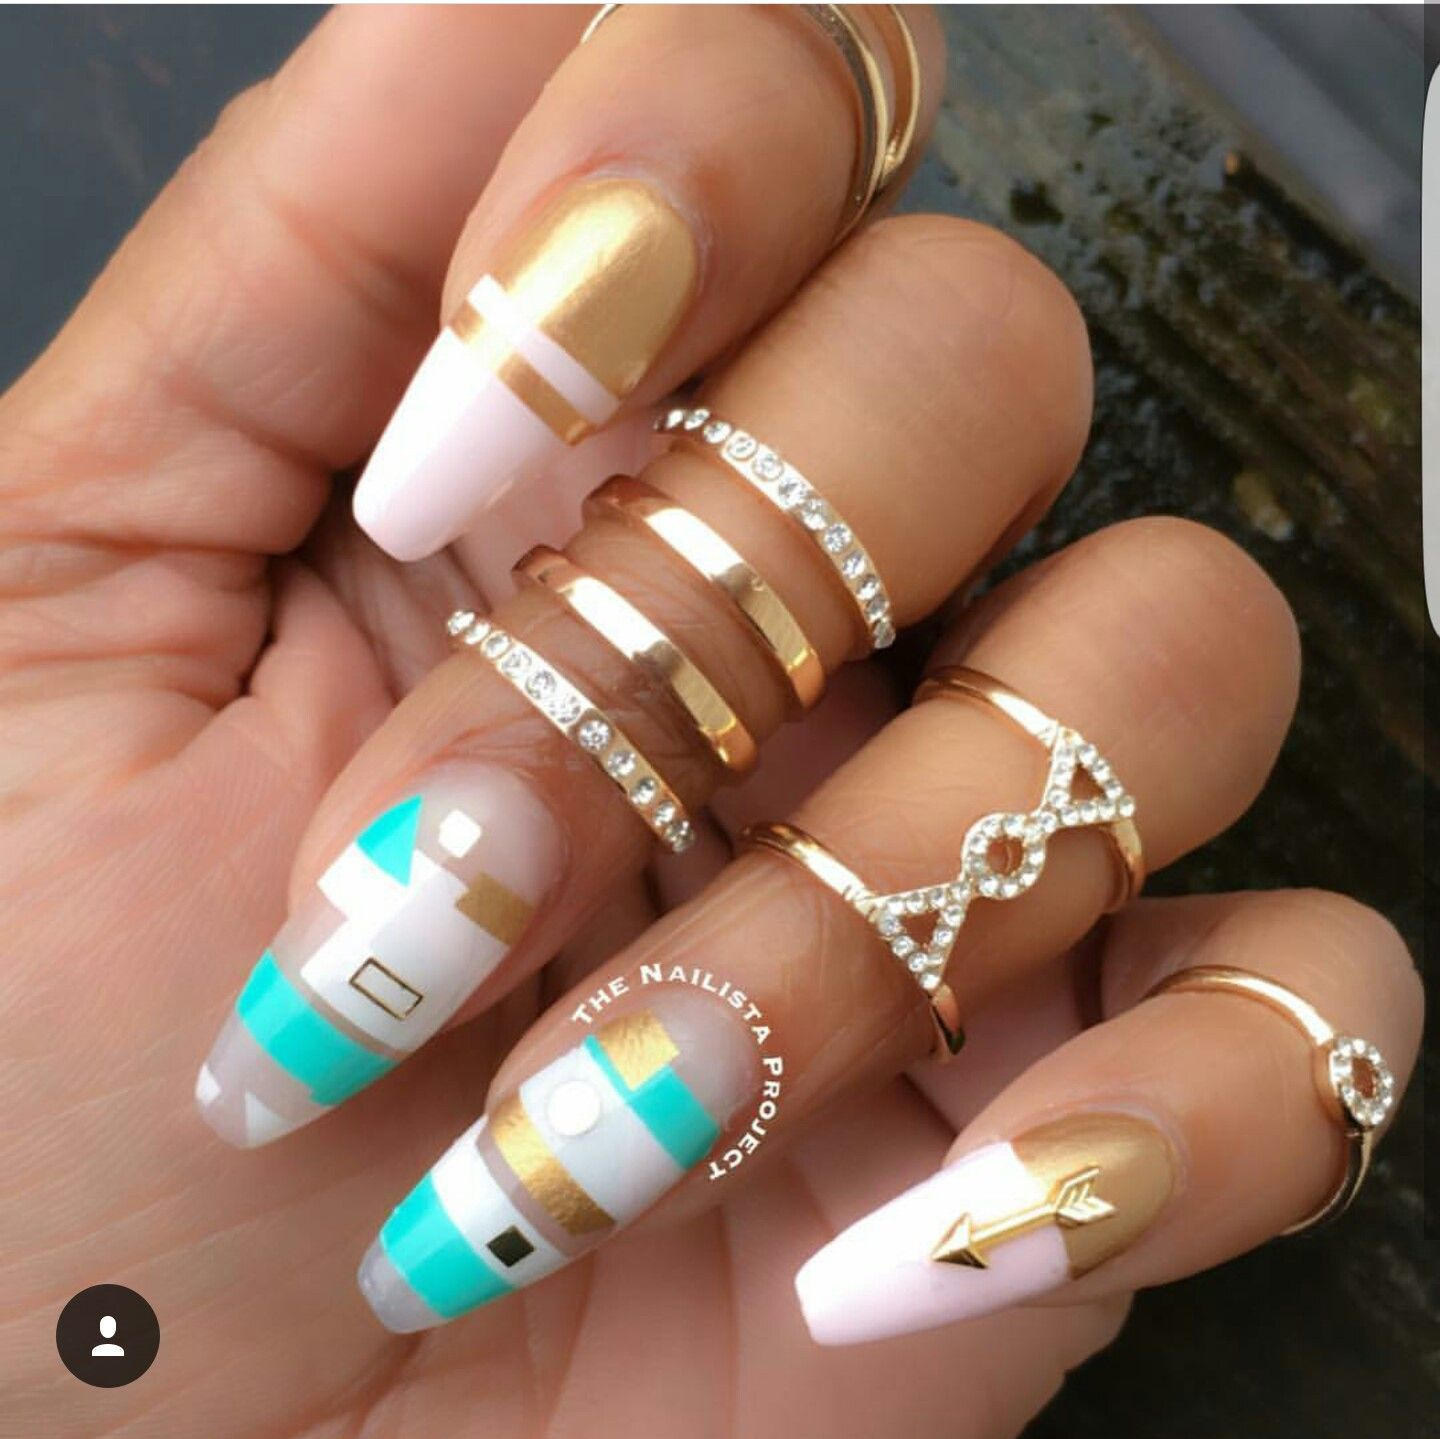 Nail Art Styledrestyled.com | BEAUTY // NAILS #### 7 | Pinterest ...